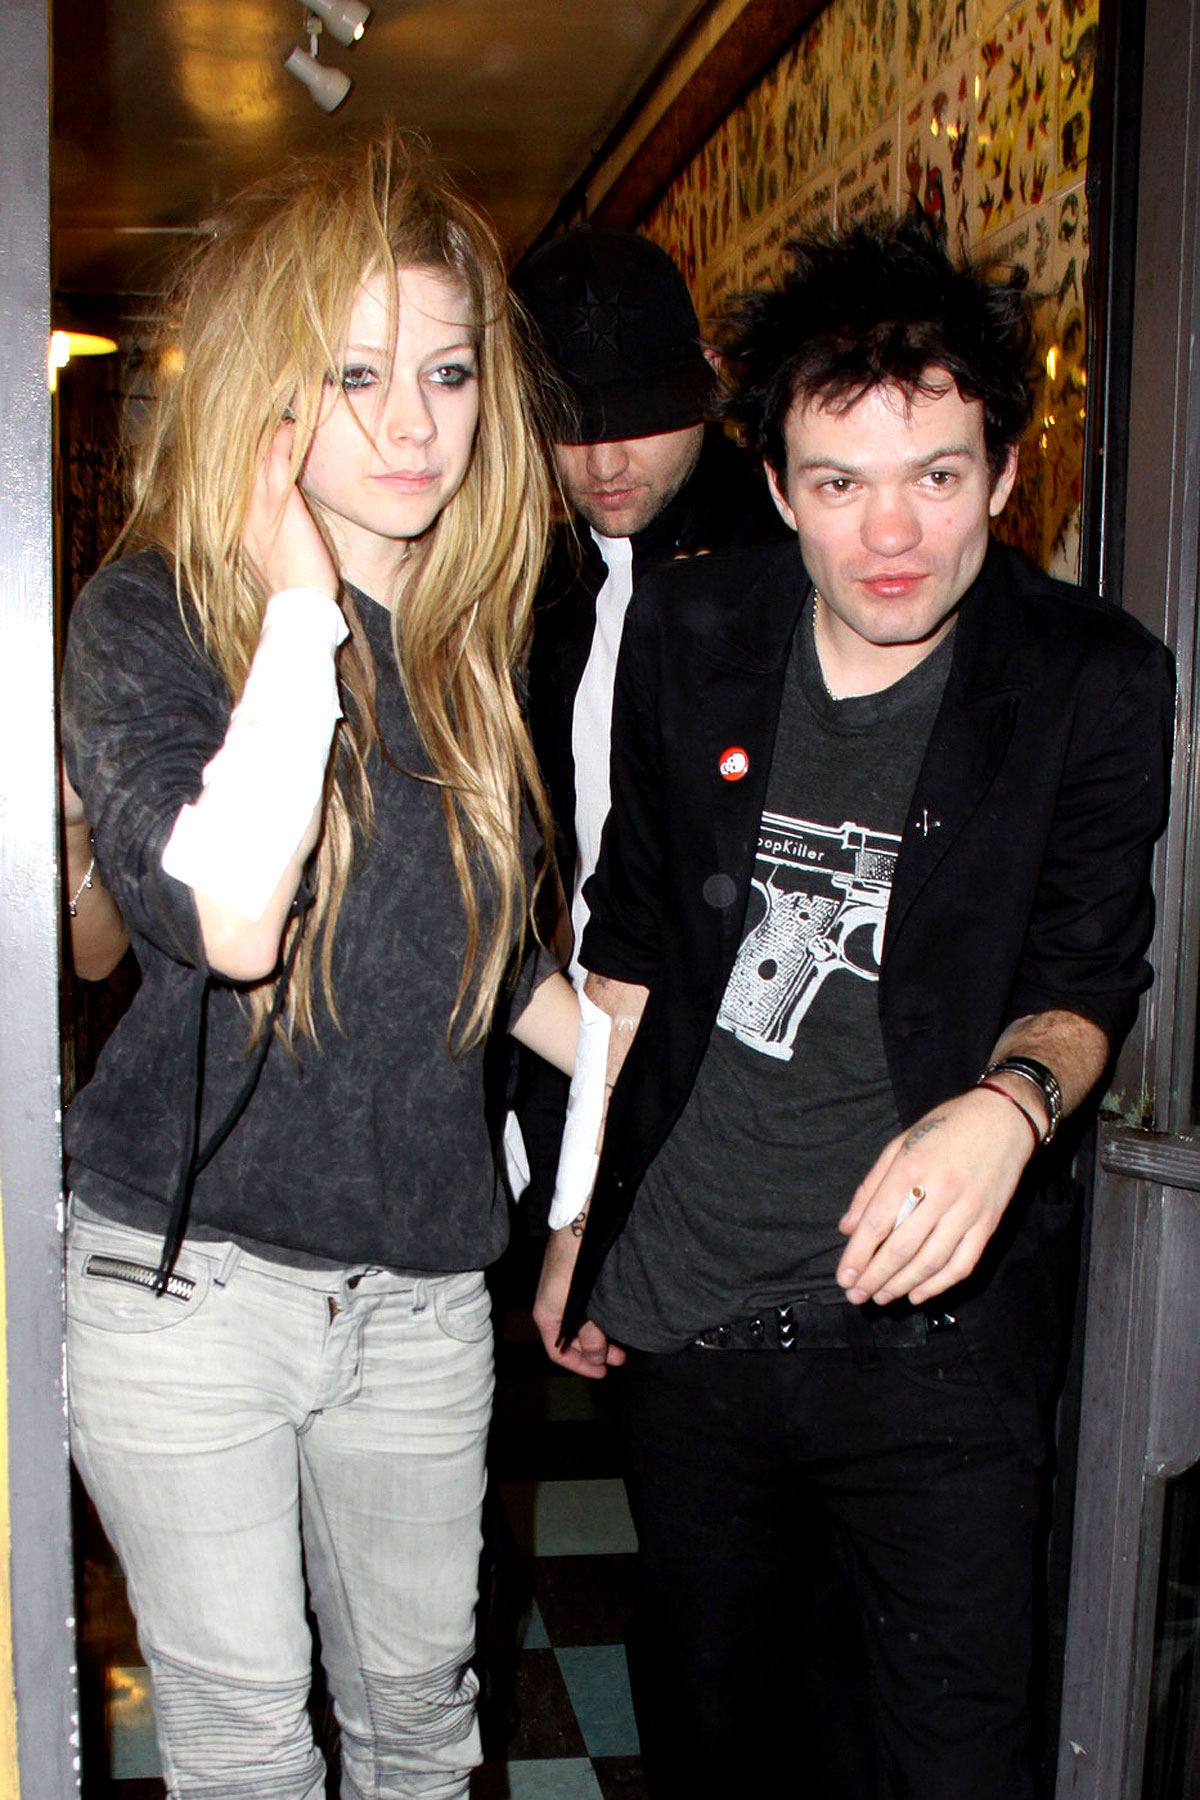 Avril Lavigne and Deryck Whibley: Re-Inked and Re-Linked? (PHOTOS)